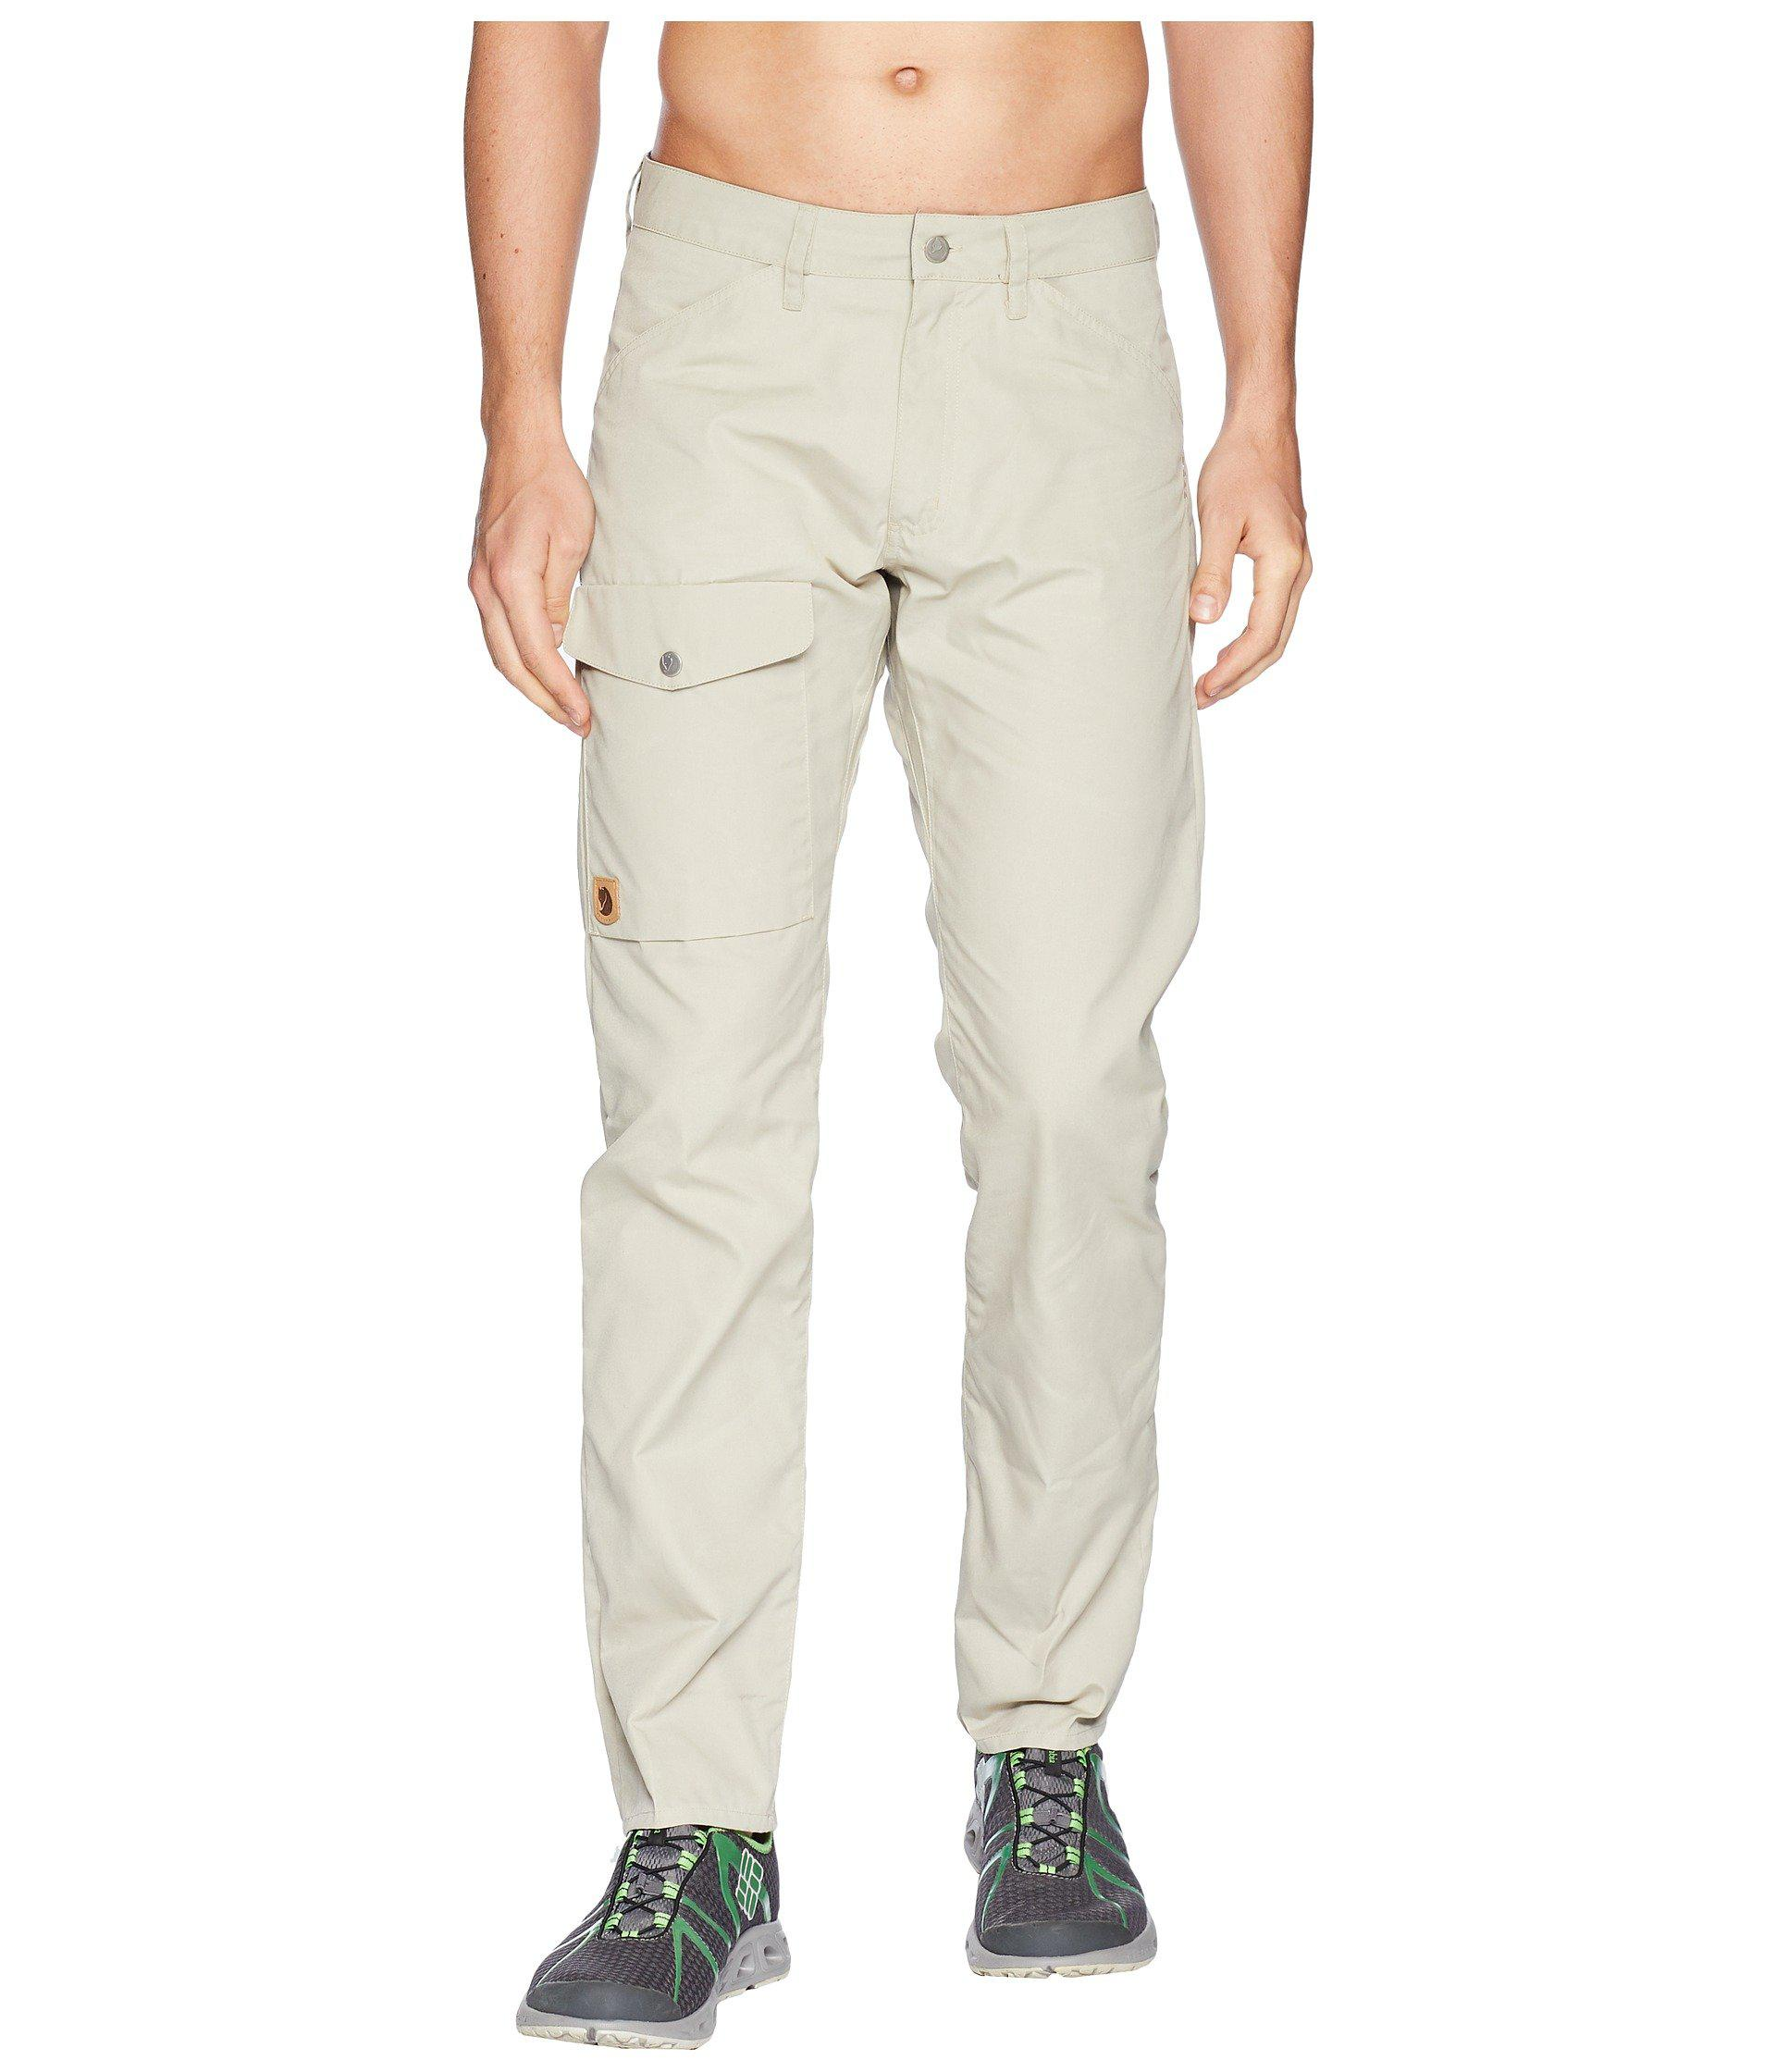 8f02e98f Fjallraven Greenland Jeans In Limestone in Natural for Men - Lyst